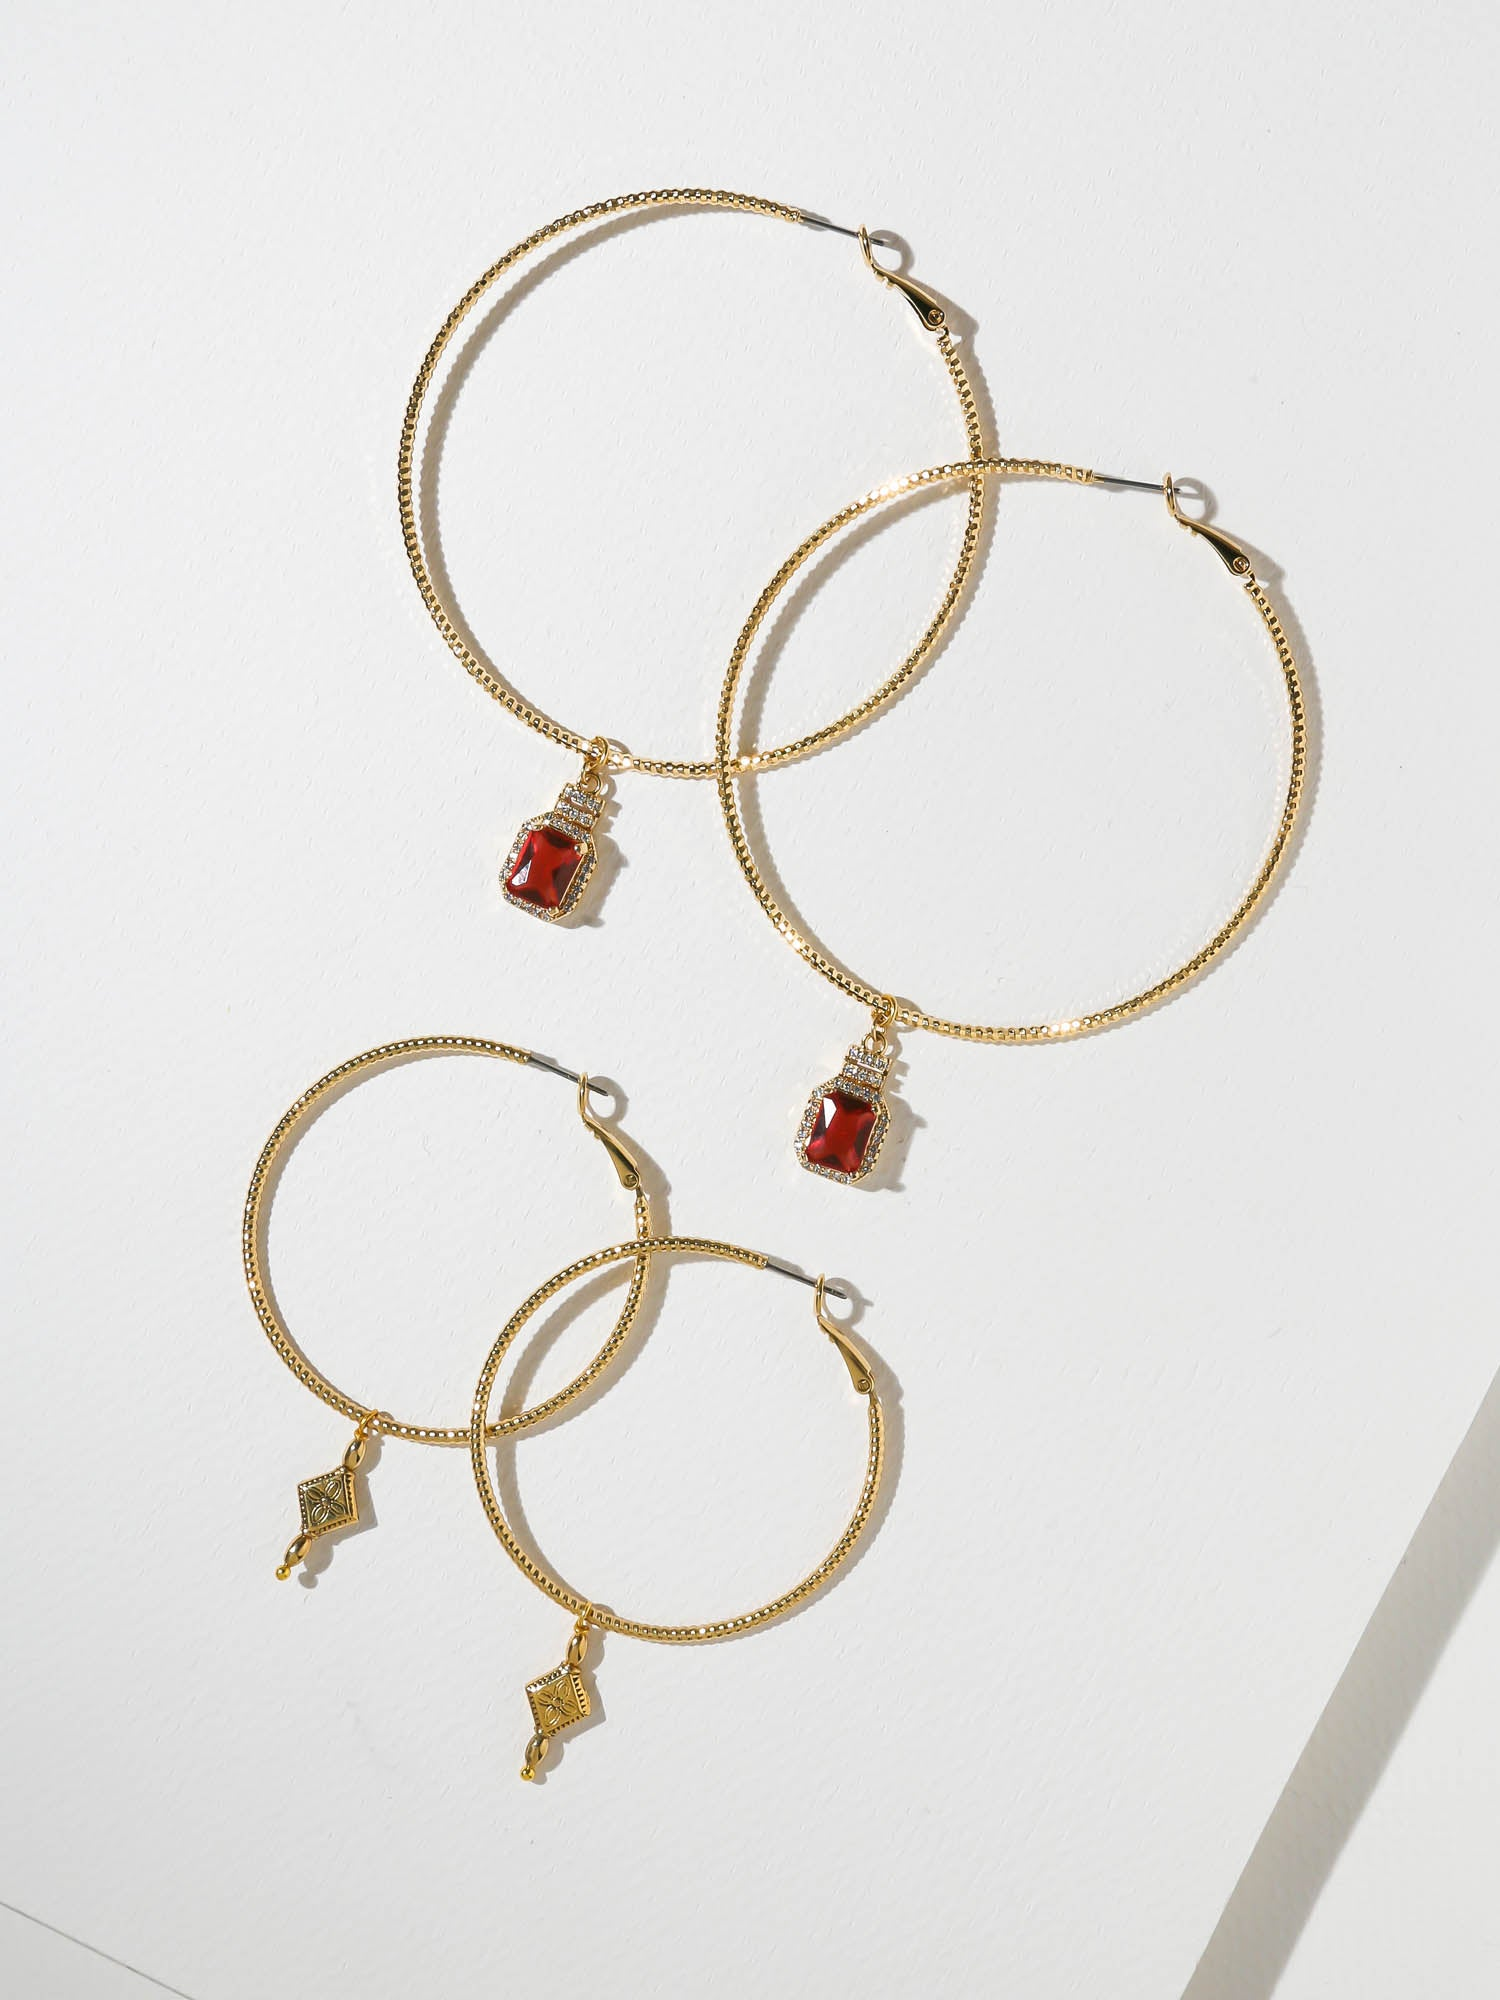 The Marley Hoop Earring Set